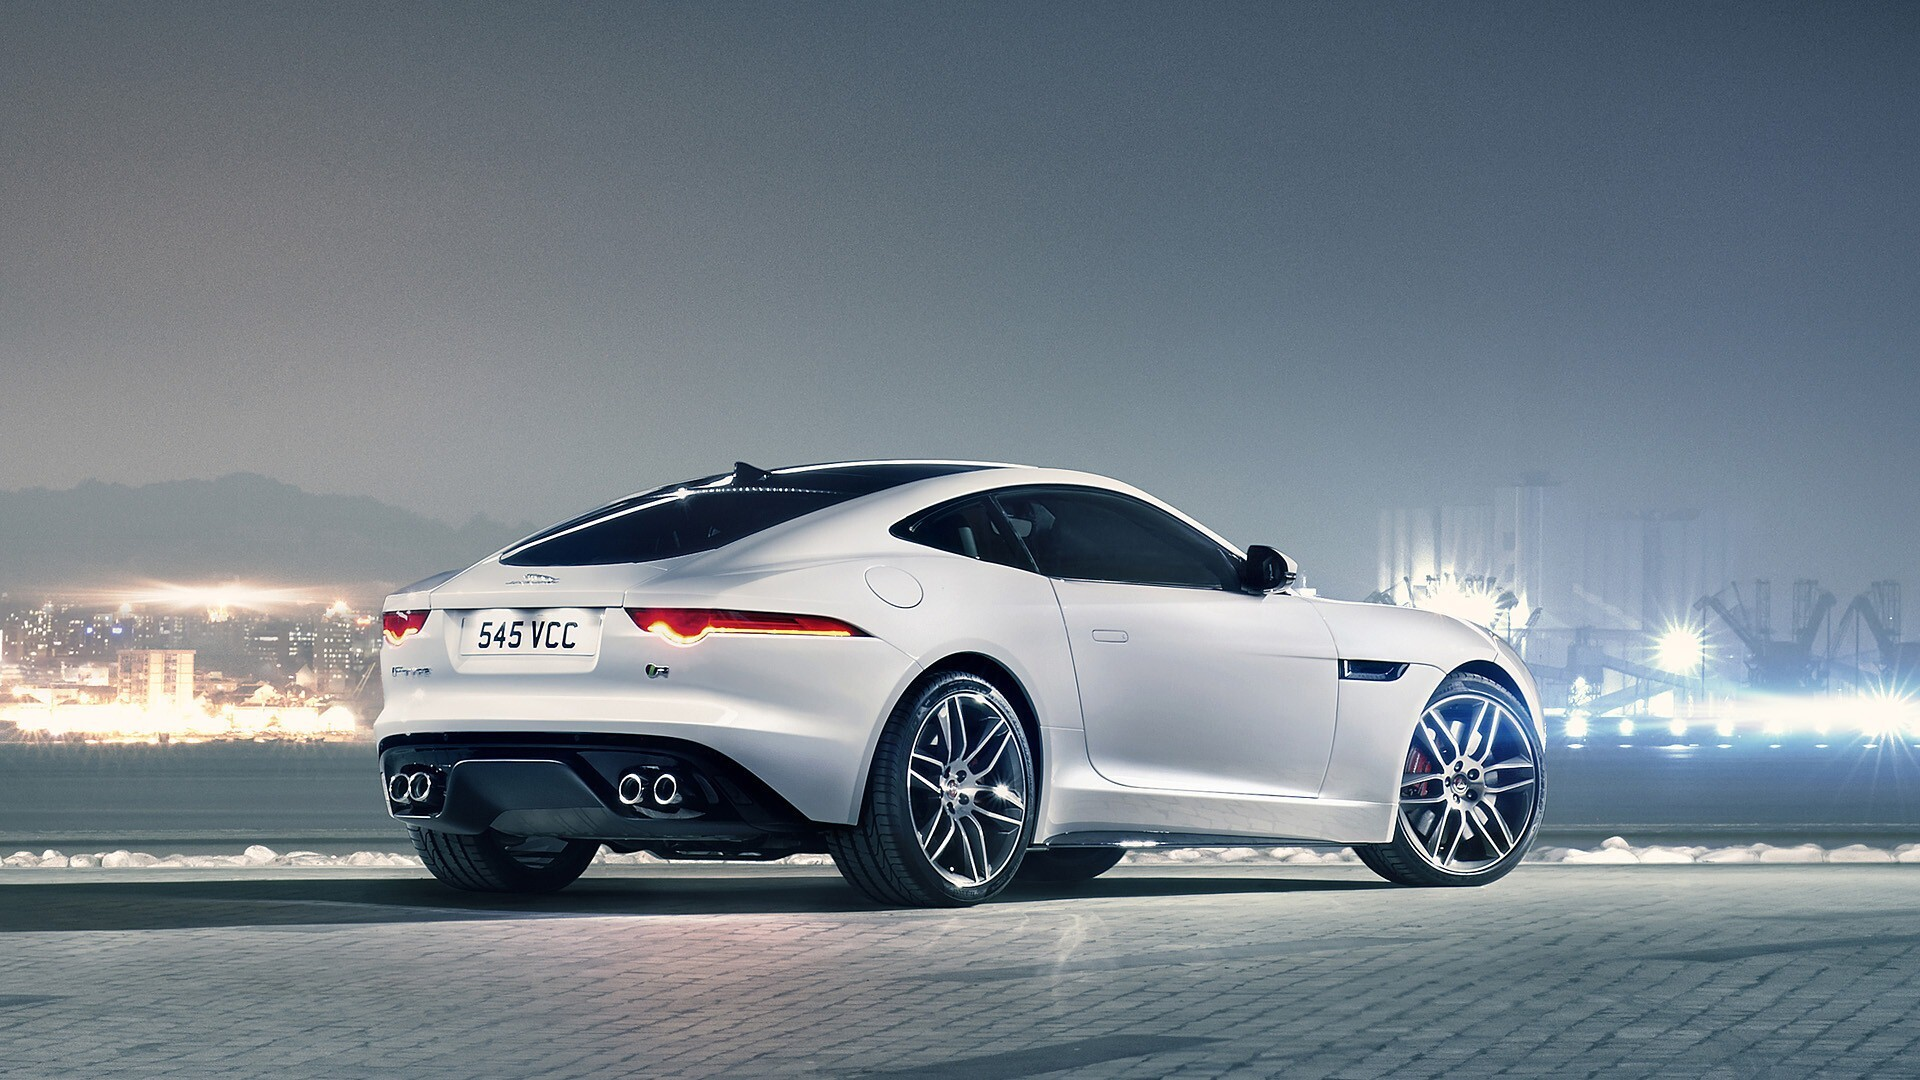 White Jaguar F Type Car Wallpaper Hd Wallpapers